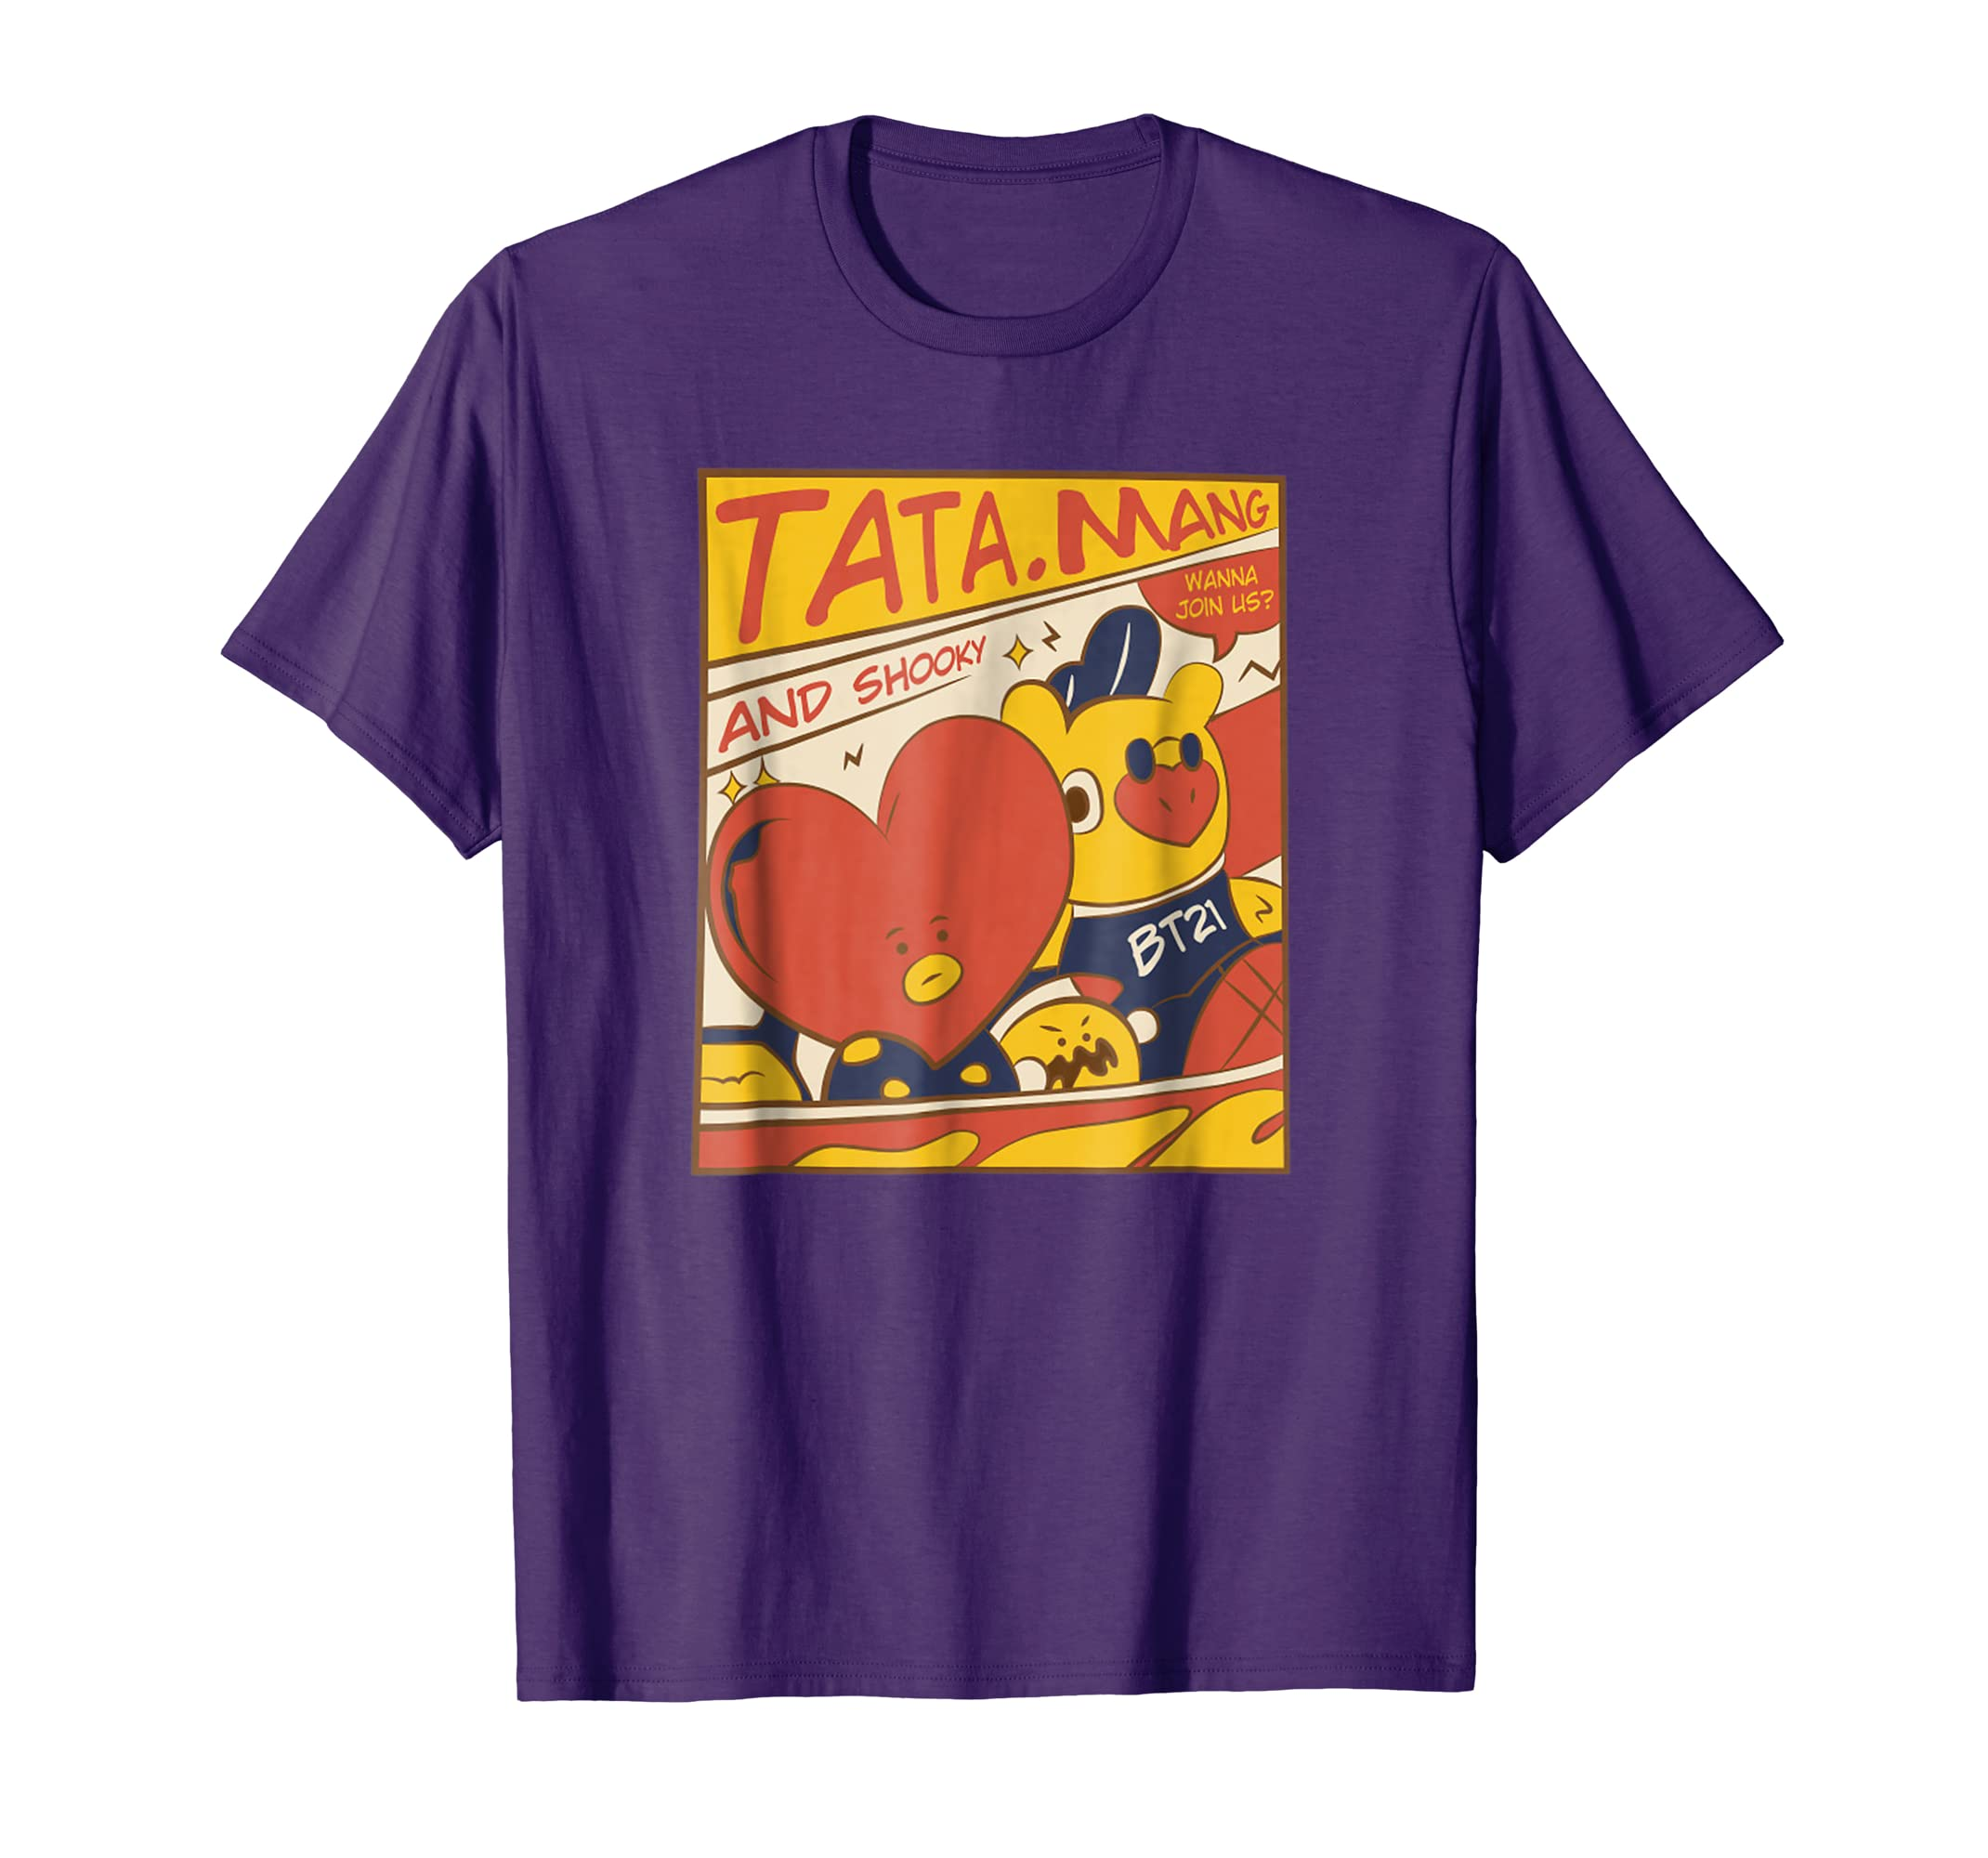 Kids T shirt Bt21 VINTAGE biases out there in the world-Colonhue